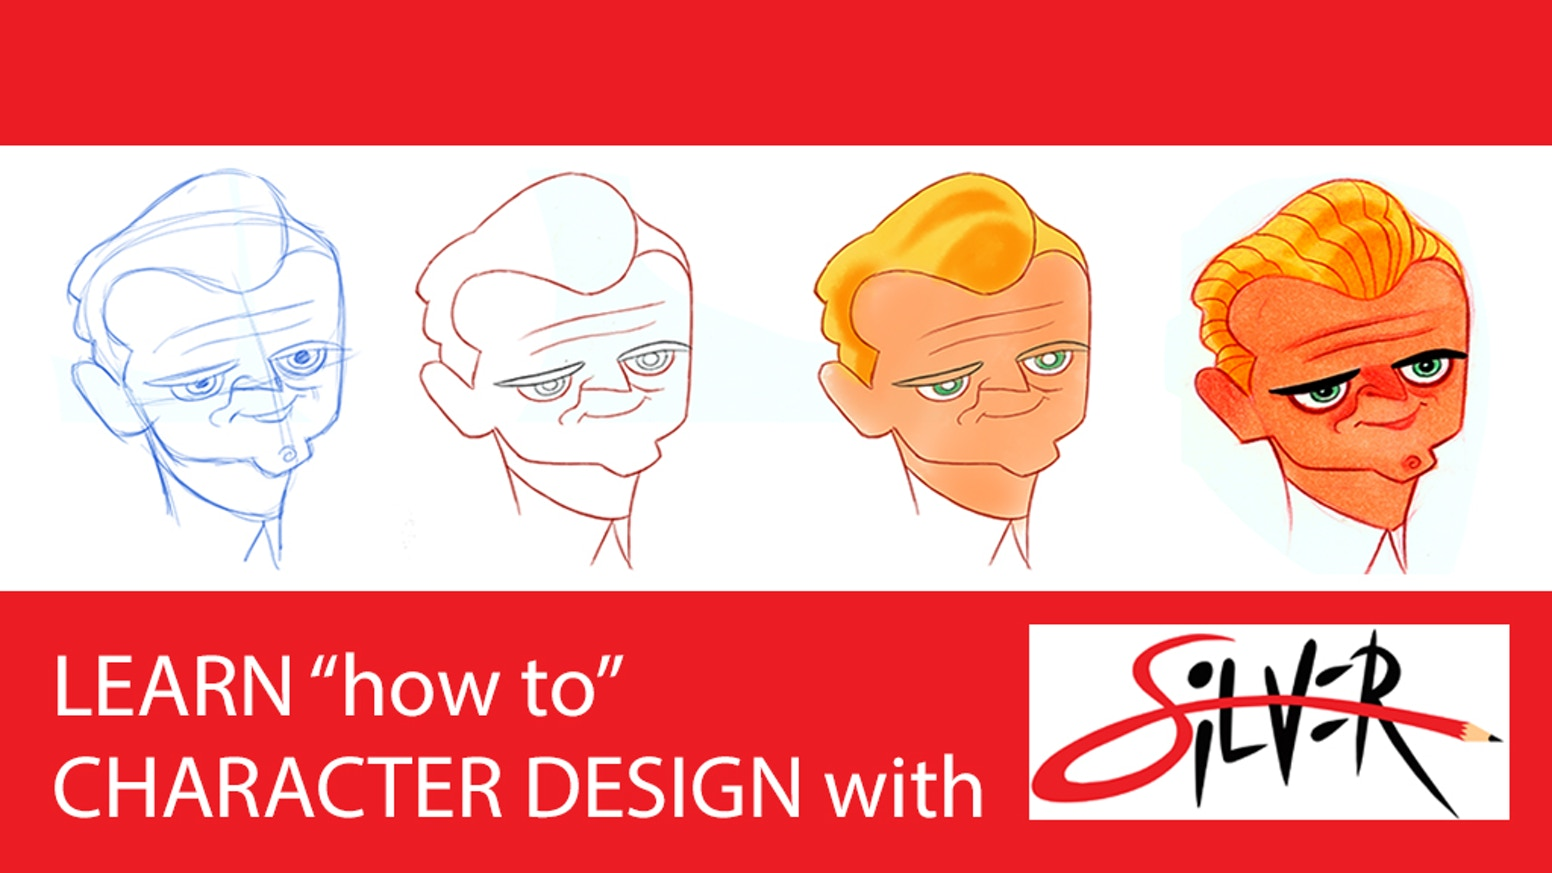 How to Character Design book teaching observation, shape language, bringing life to characters, the studio production process and more.